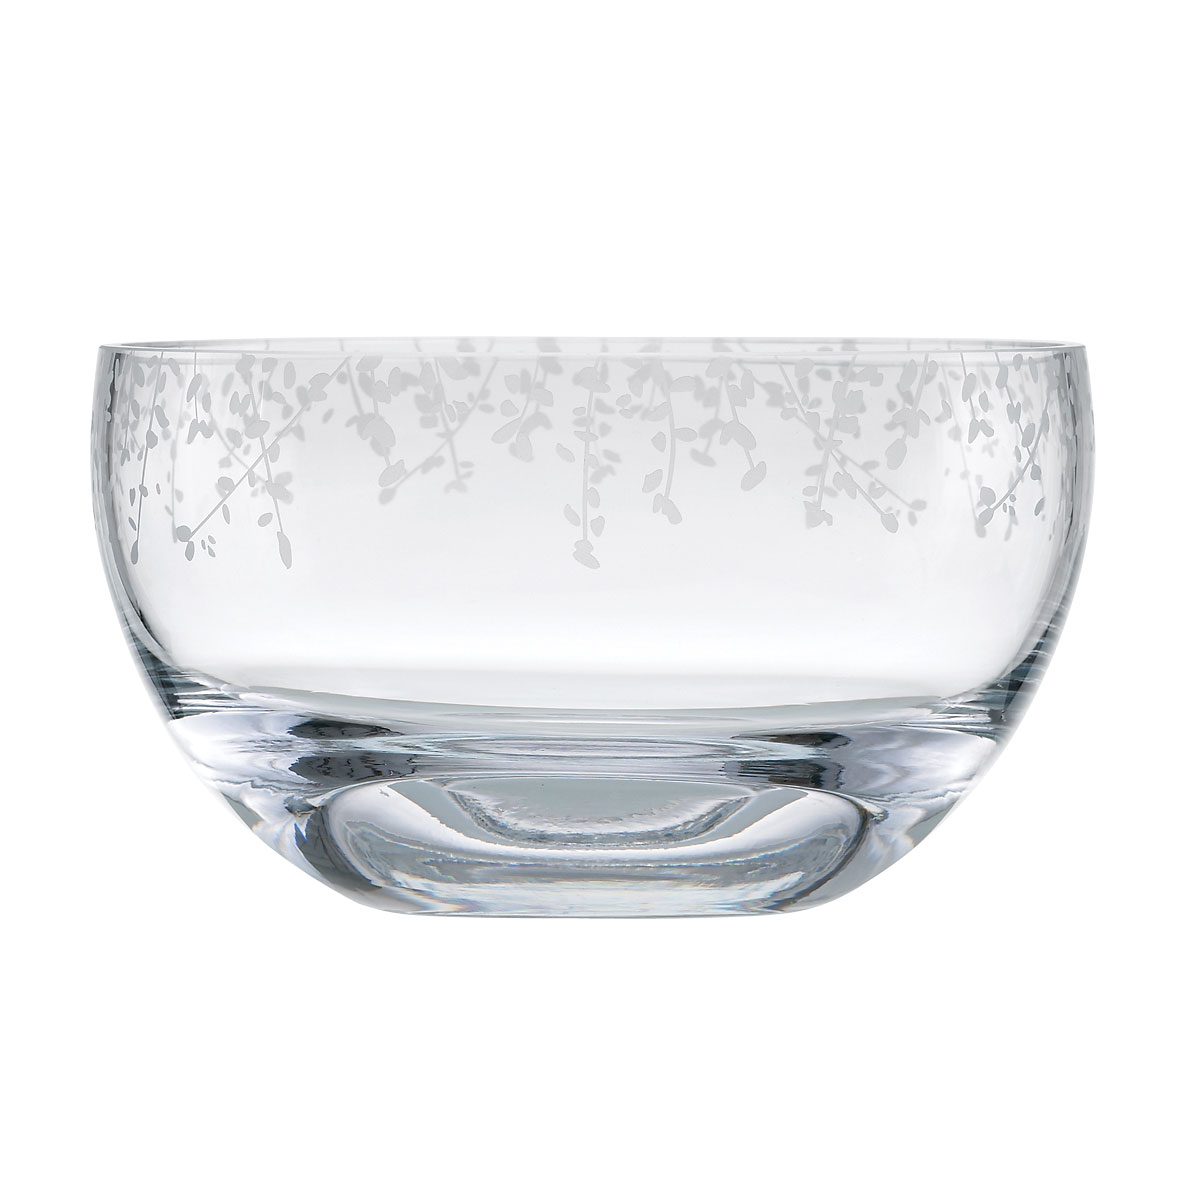 Kate Spade New York, Lenox Gardner Street Crystal Bowl, Large